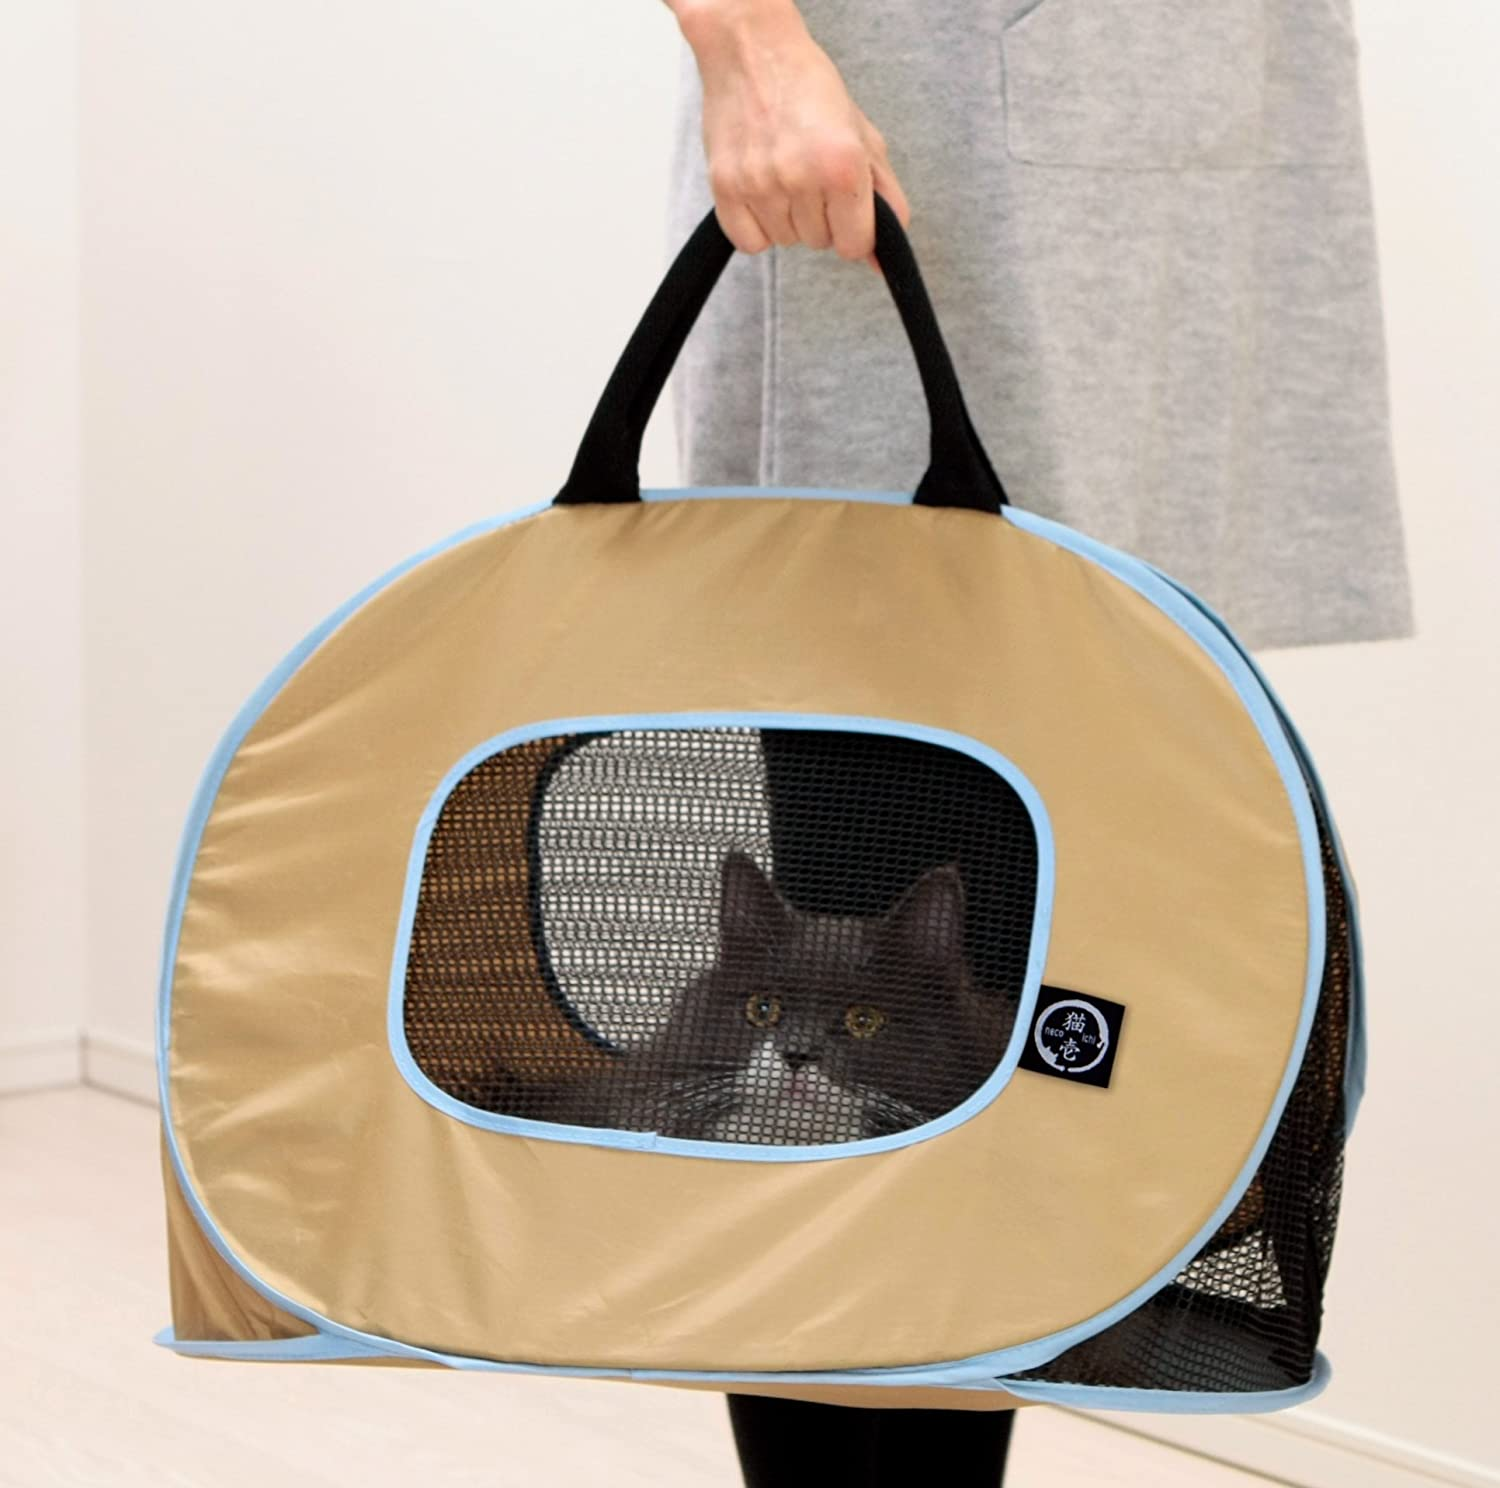 Best Cat Carrier for Scared Cat